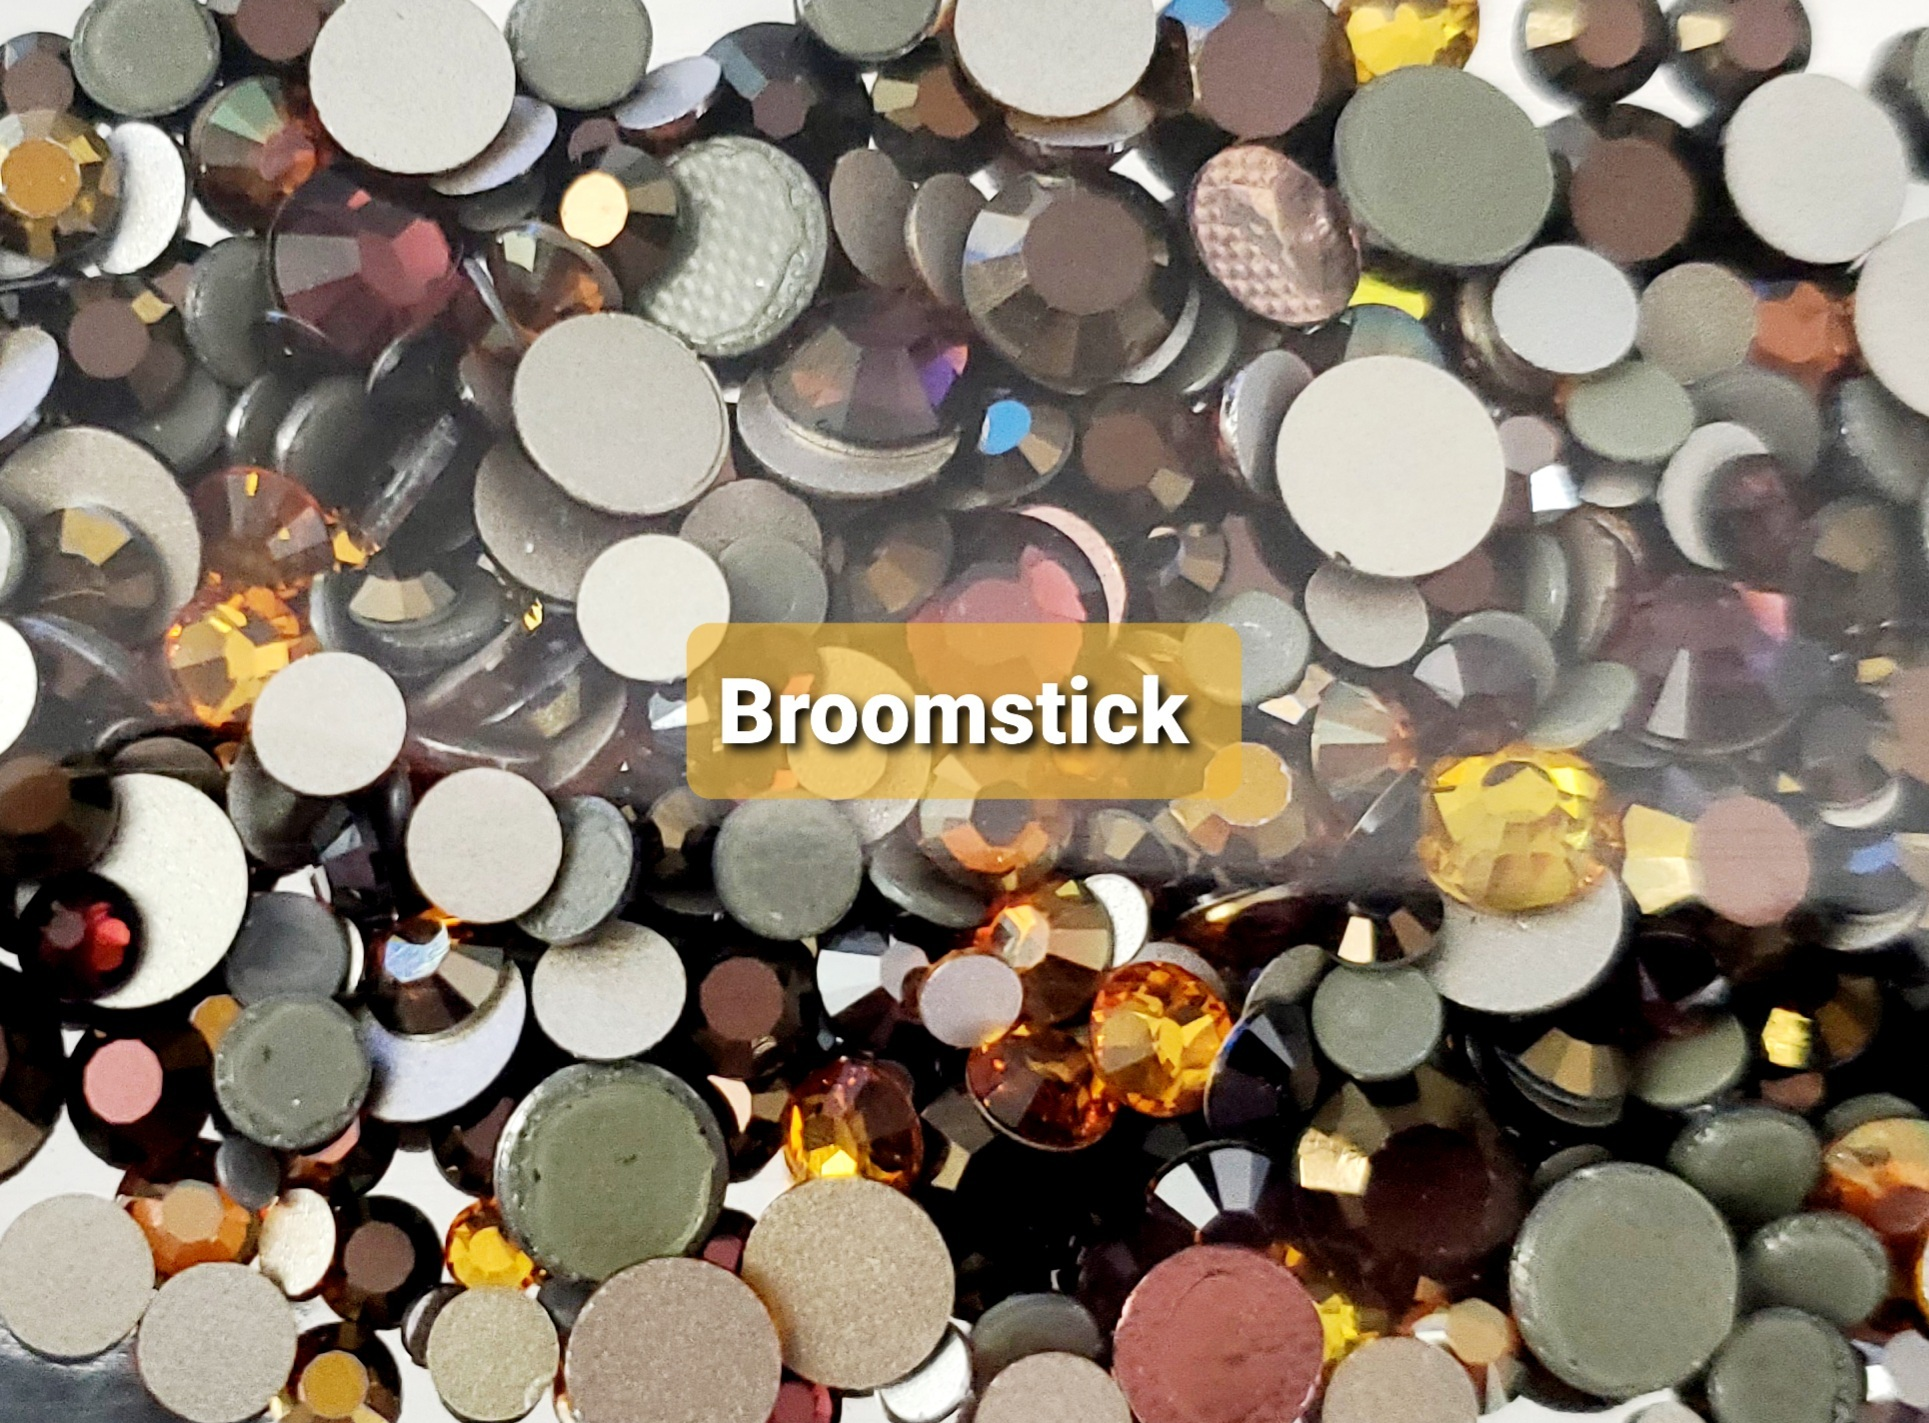 New Mix! Broomstick!